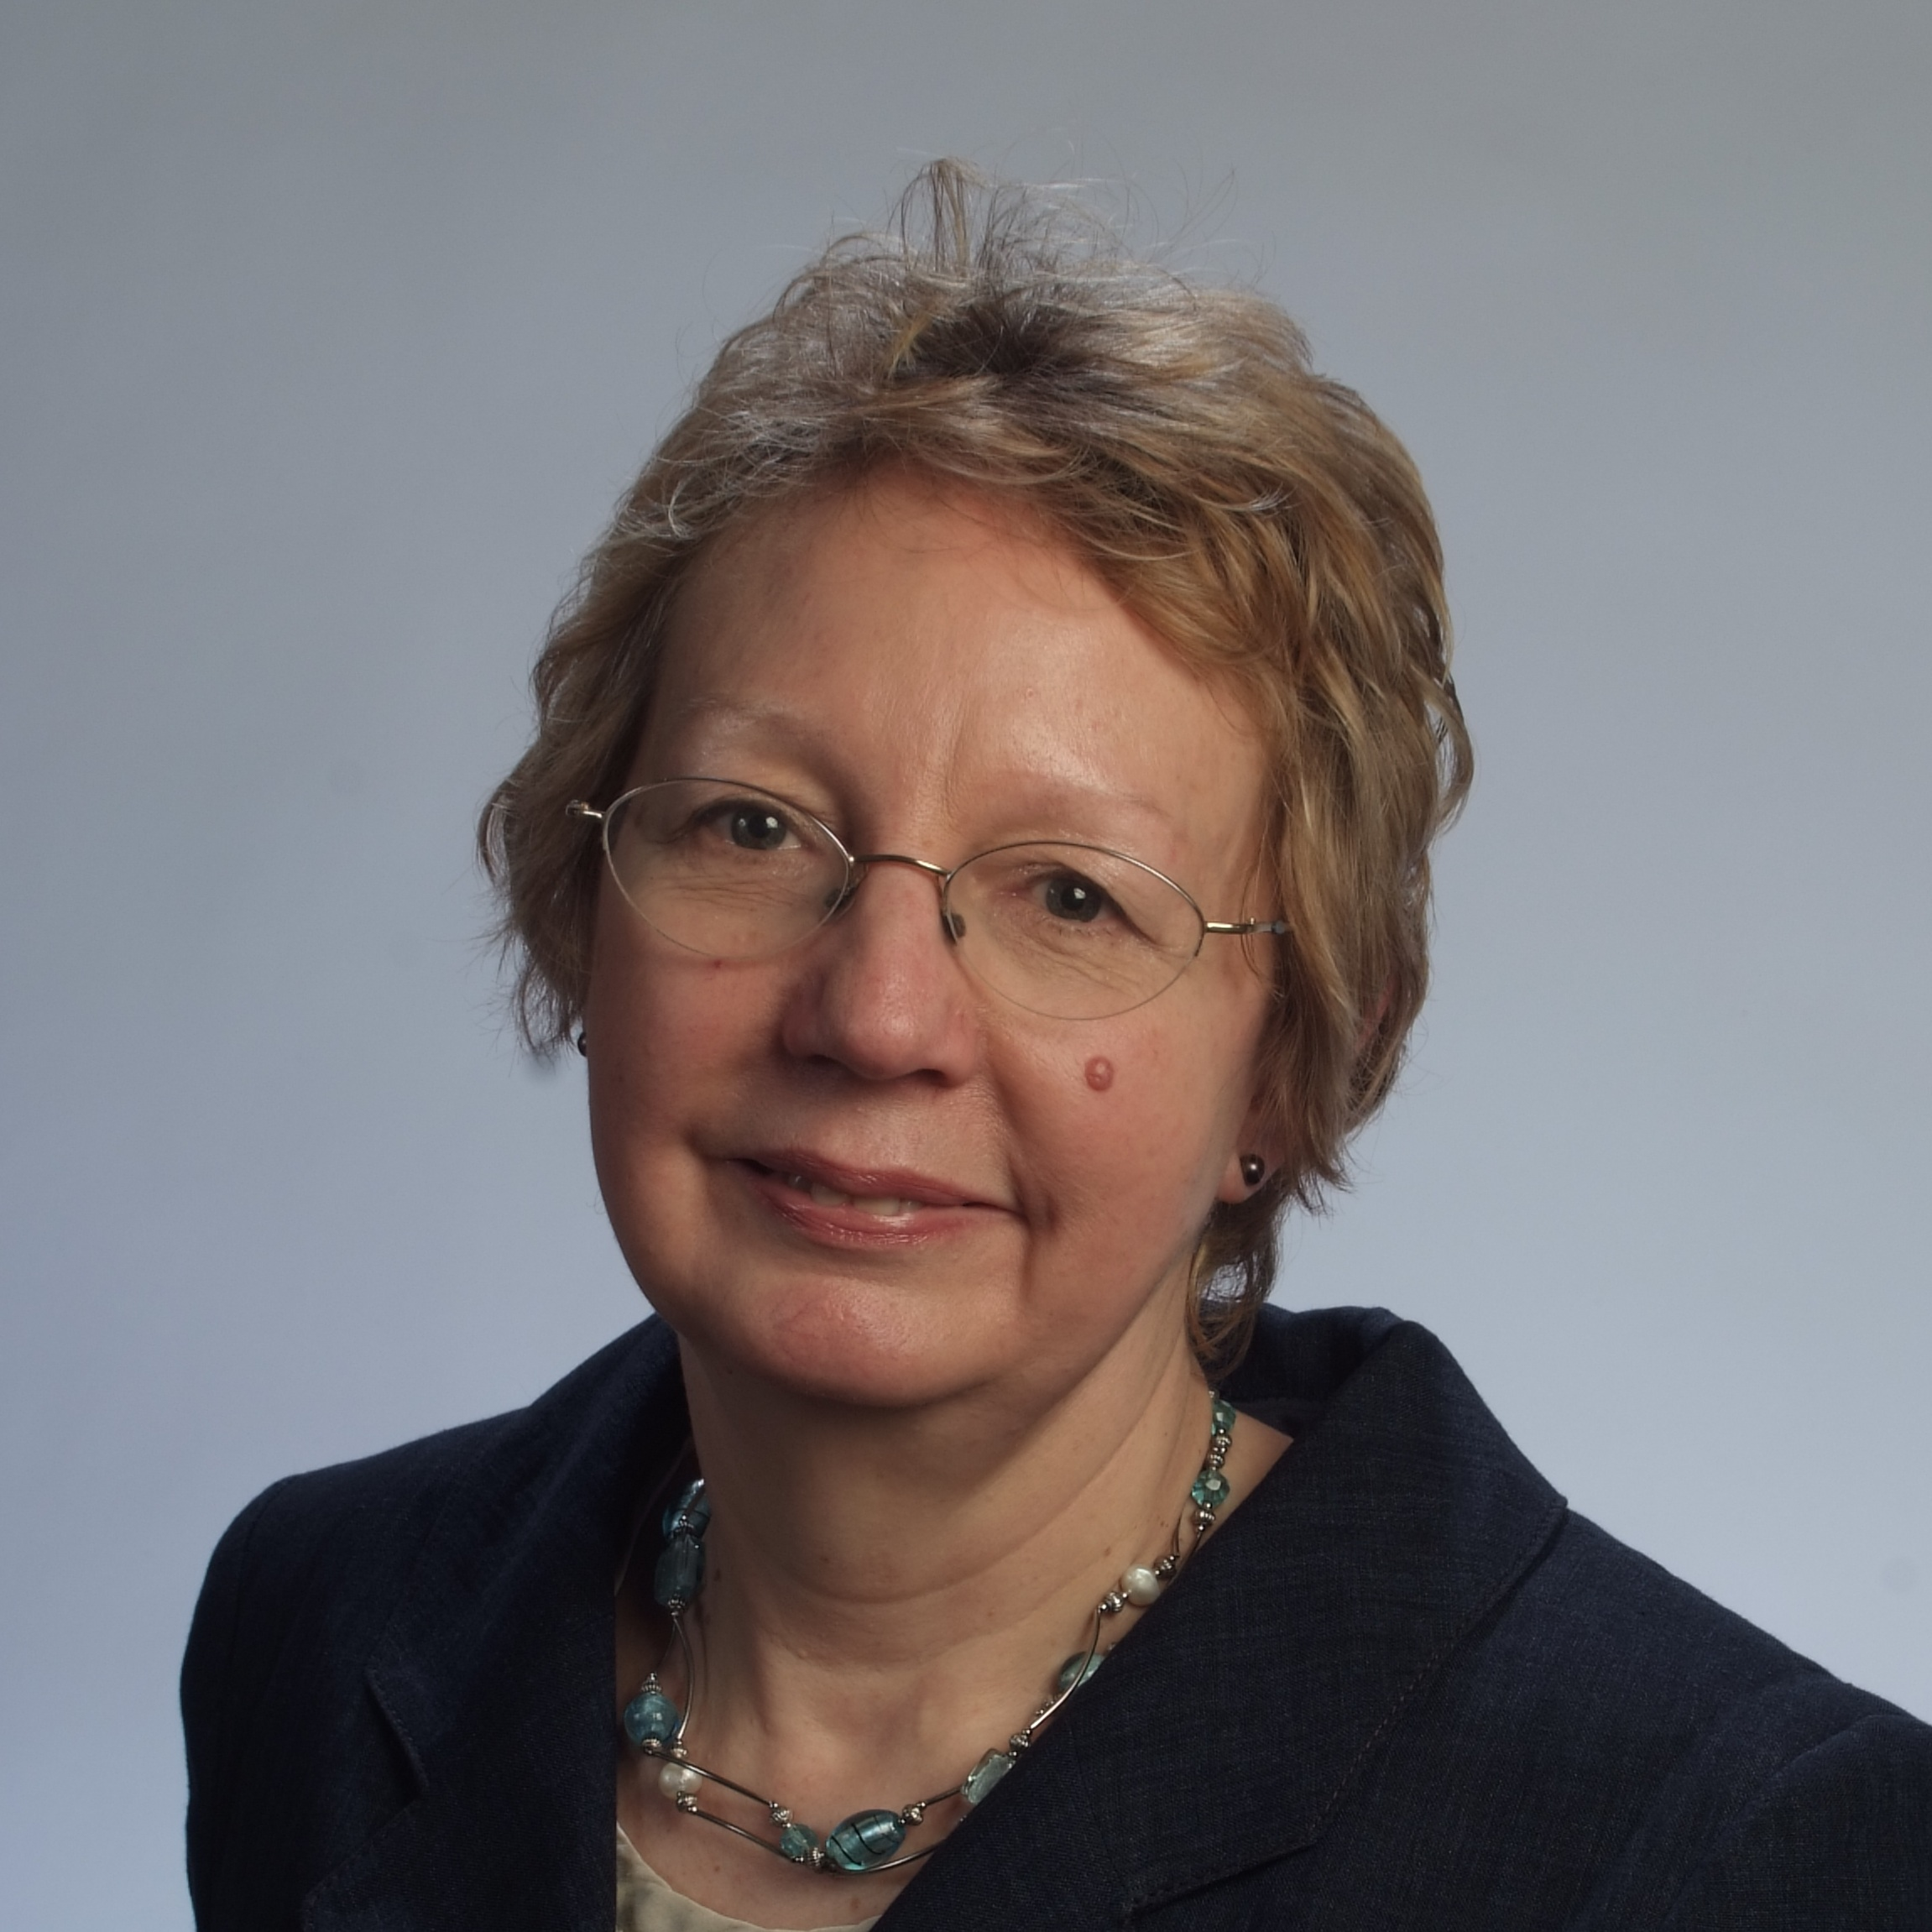 Professor Carol Jagger - AXA Professor of Epidemiology of Ageing at Newcastle University and Deputy Director of the Newcastle University Institute for AgeingRead Biography